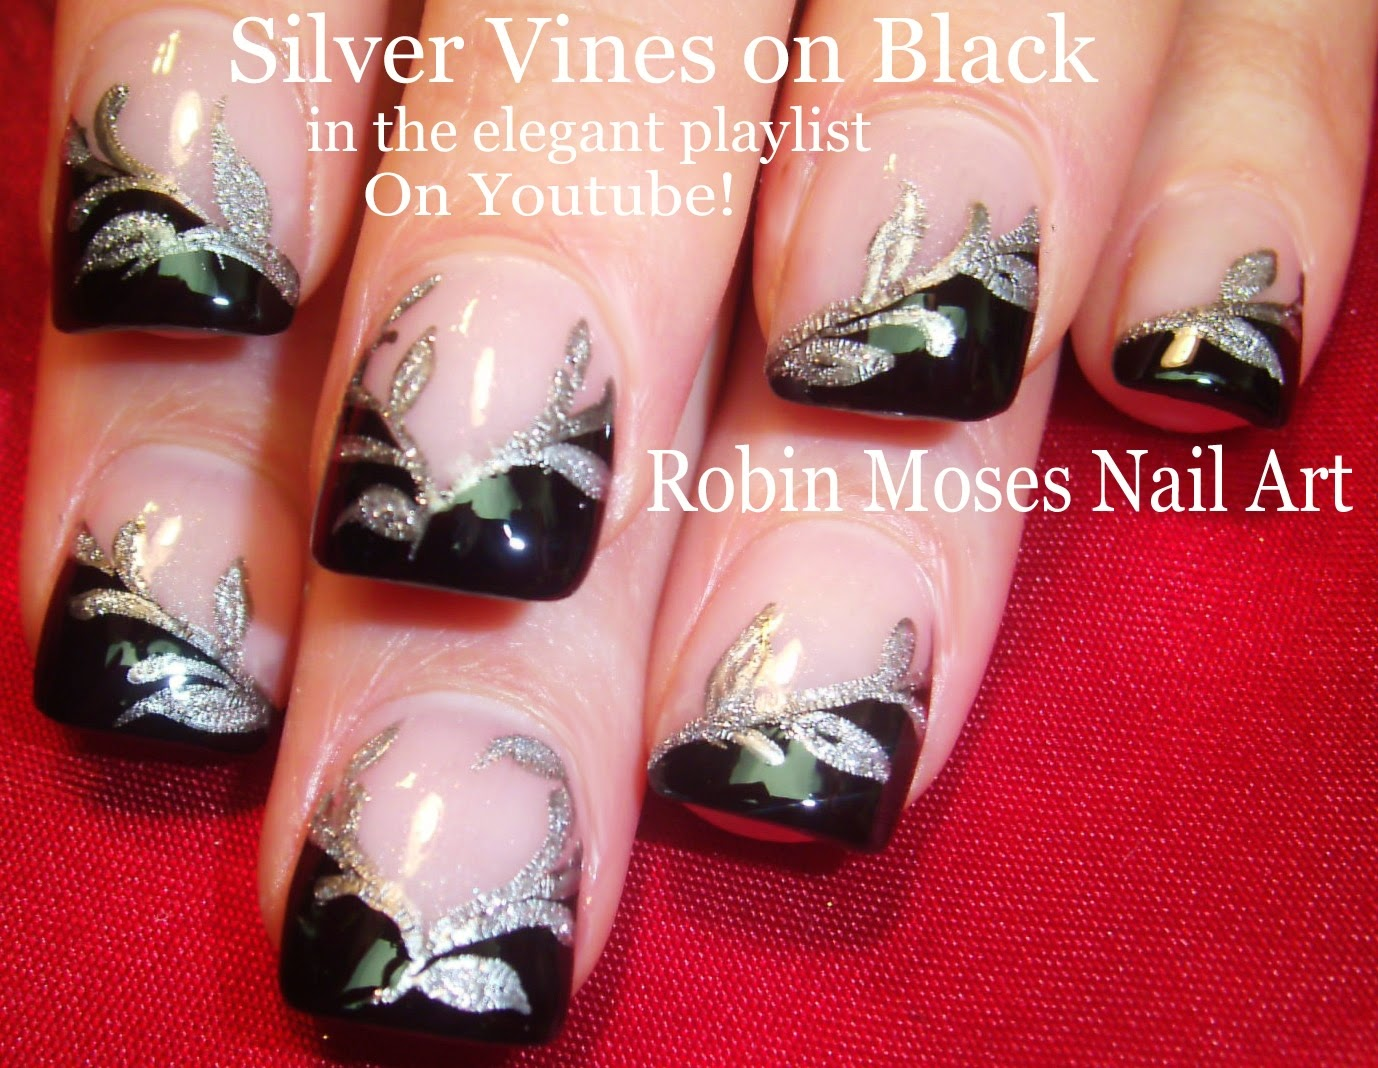 Robin moses nail art nye nails new years eve nails hot nails nail art tutorial diy black silver french manicure easy glitter nails prinsesfo Images